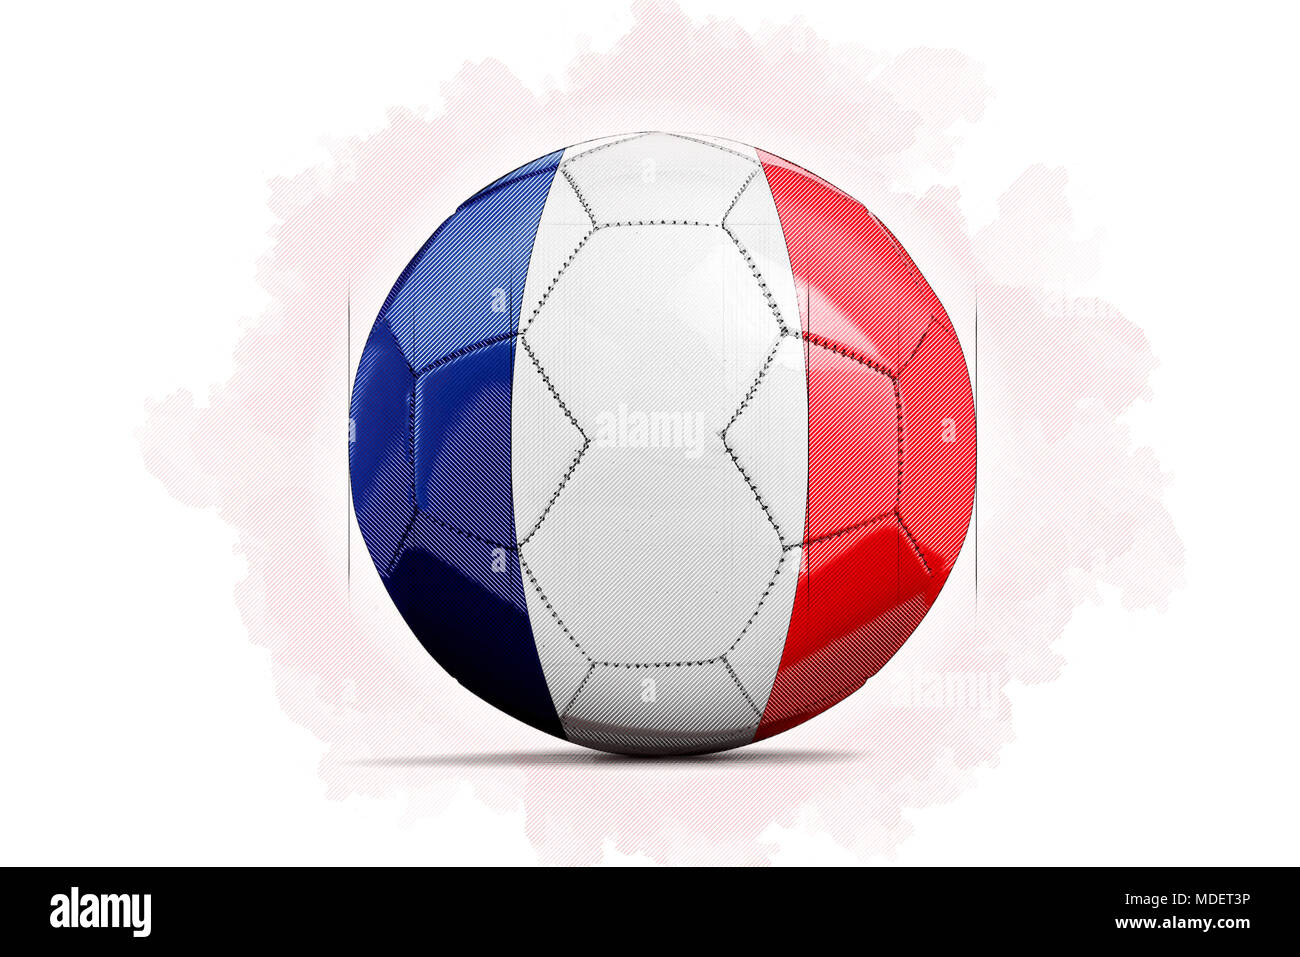 digital artwork sketch of a soccer ball with team flag france